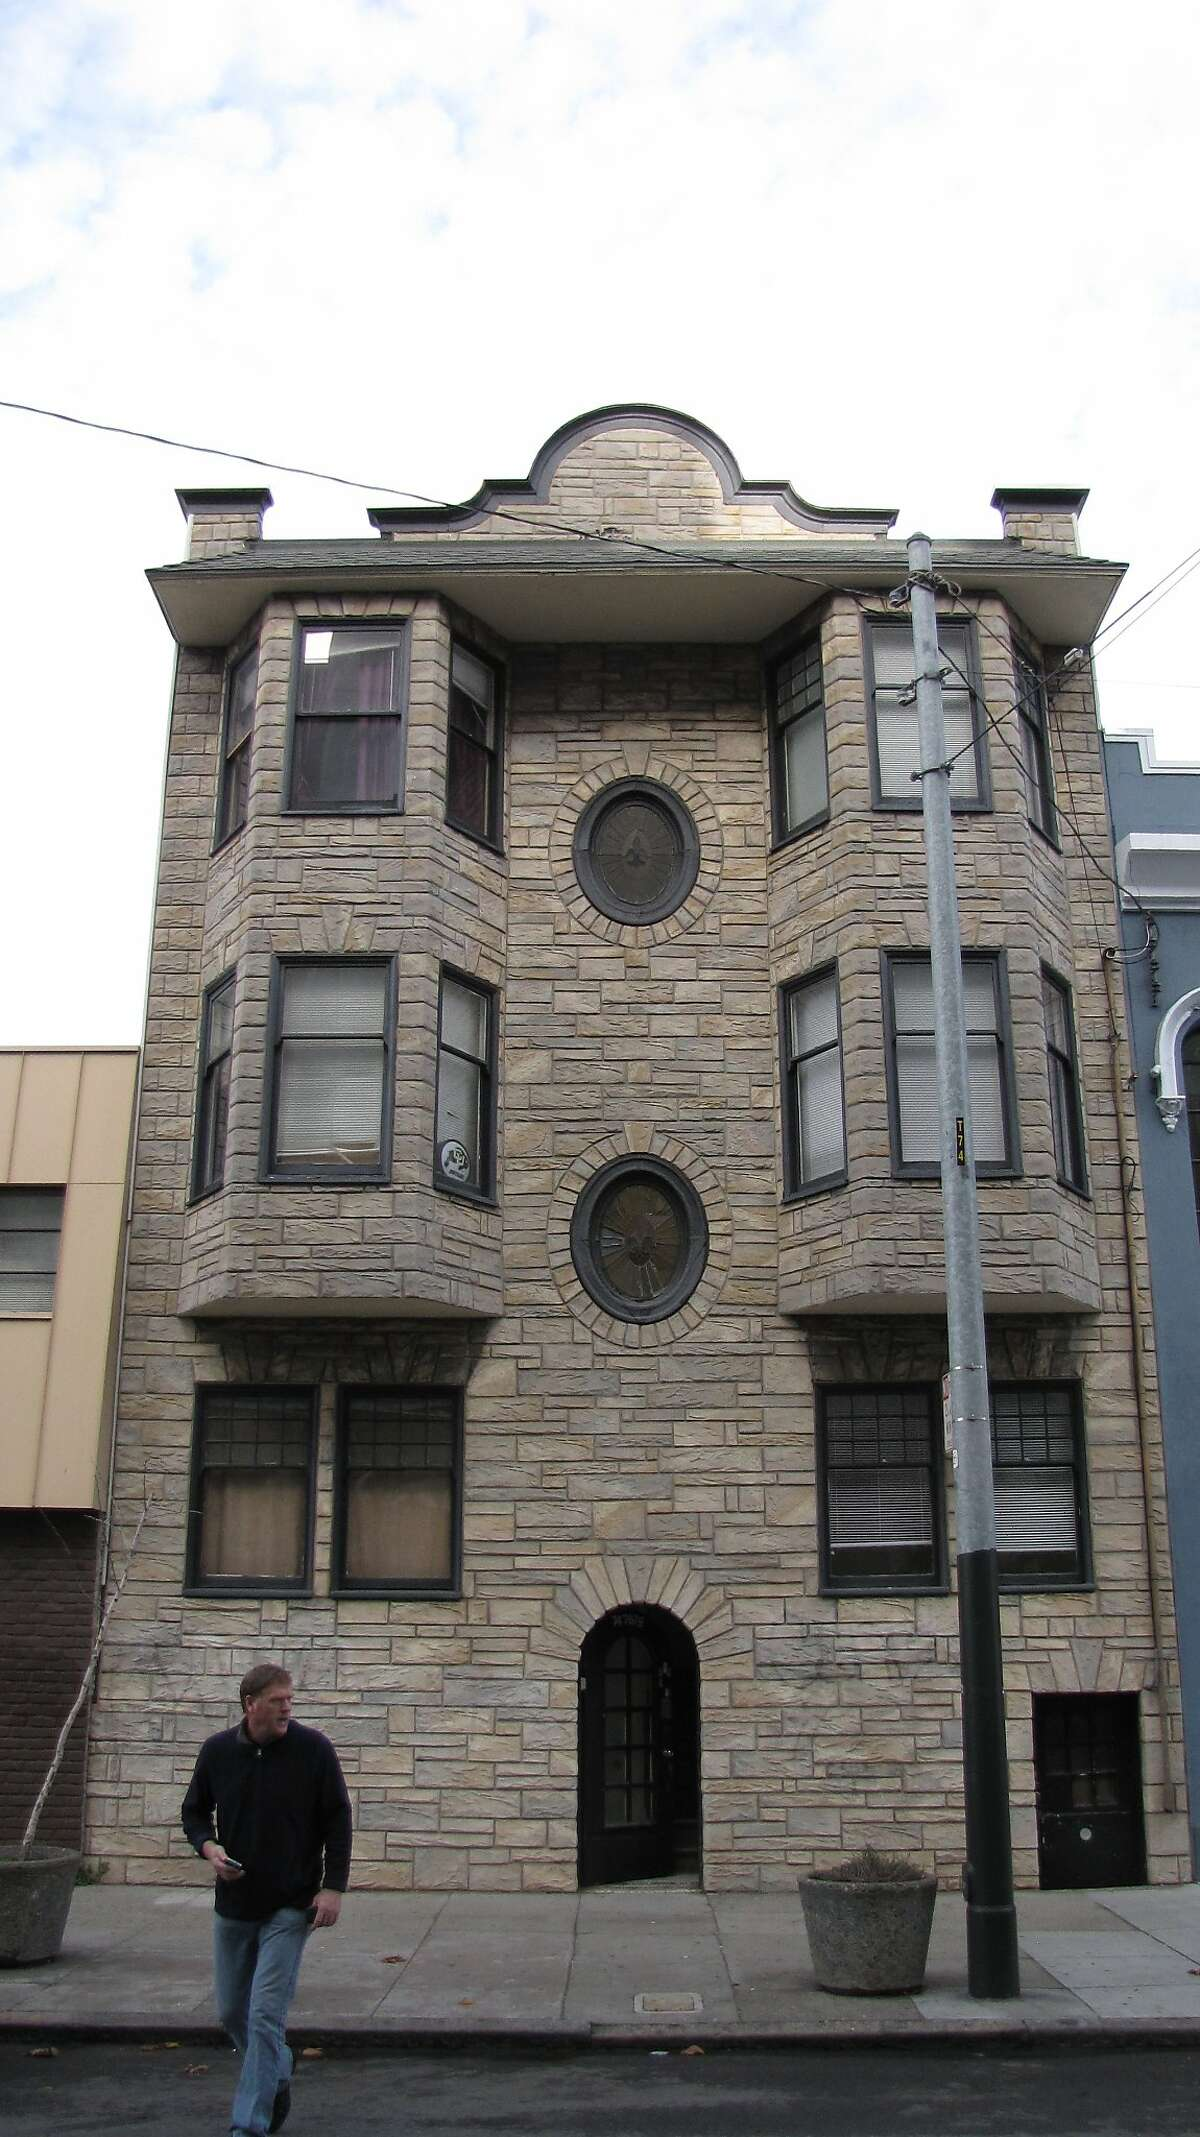 An early 20th Century collection of flats on the 100 block of Page Street, covered in Perma-Stone at some point decades ago.